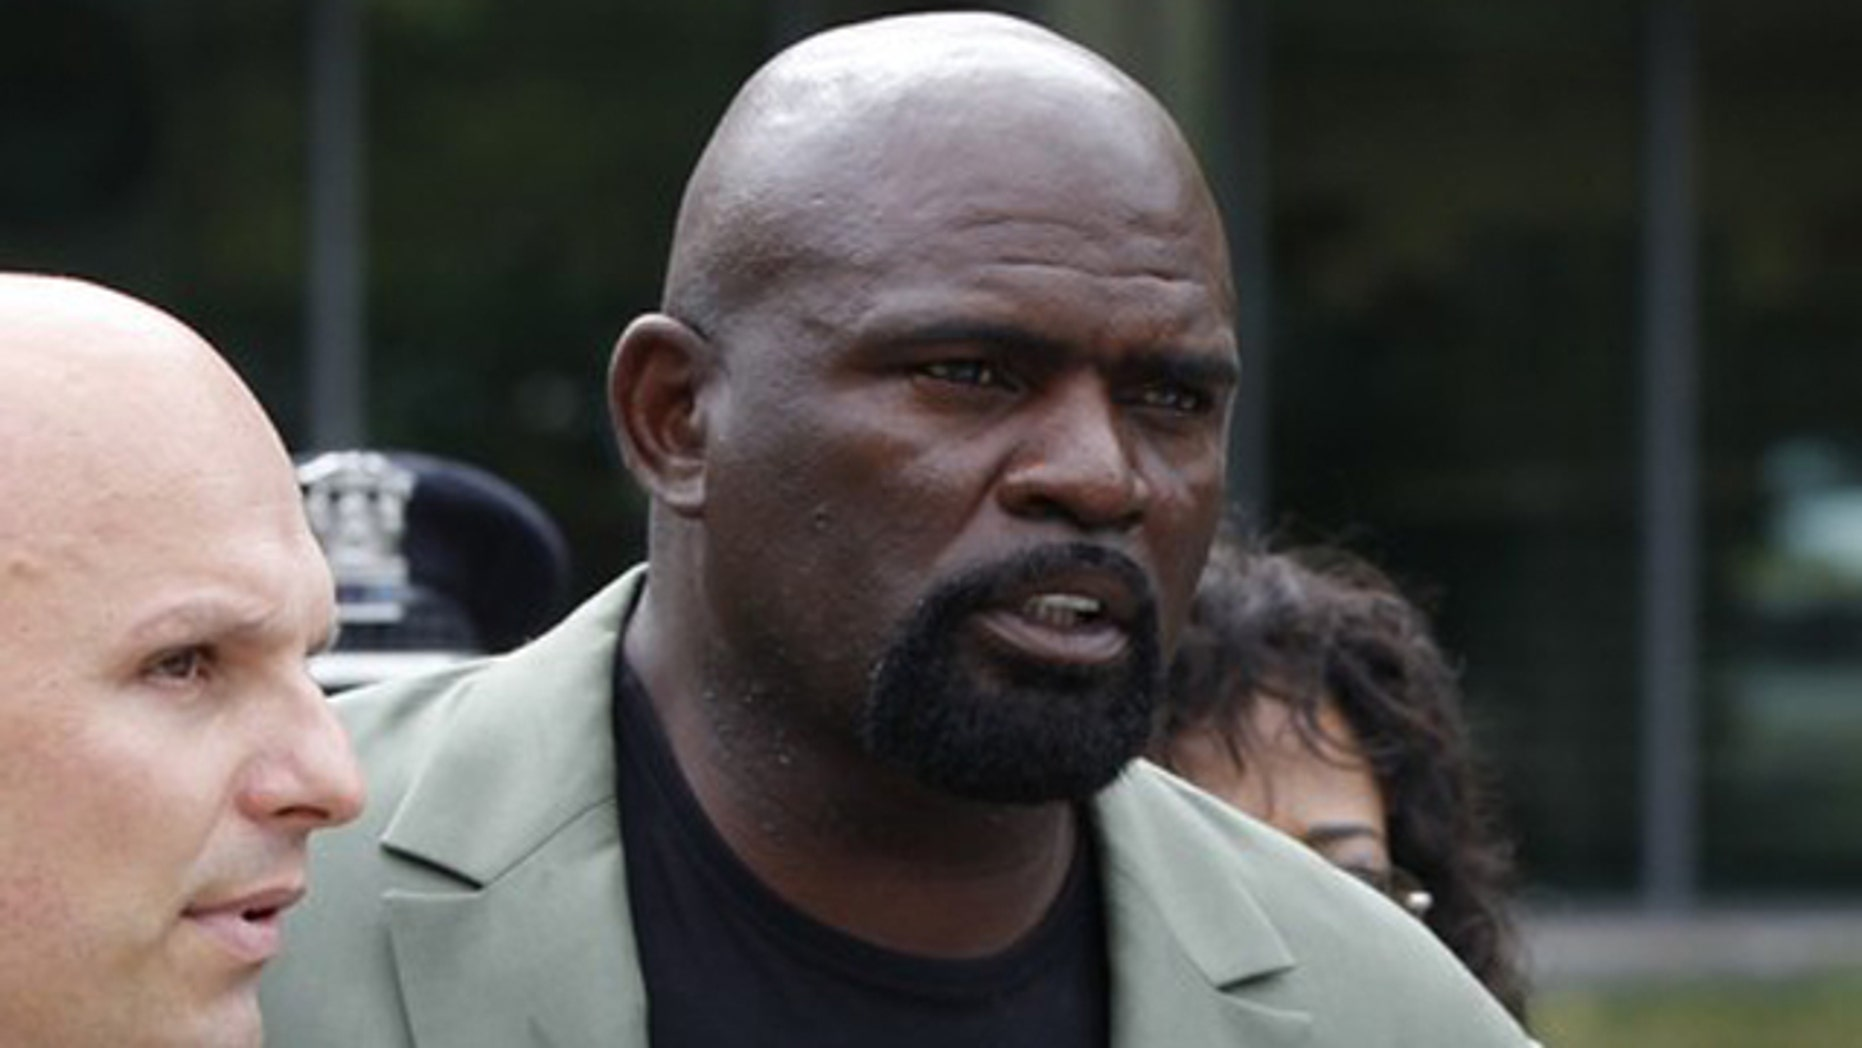 Former NFL football player Lawrence Taylor leaves Rockland County Court with his attorney Arthur Aidala after pleading not-guilty to third-degree rape charges after his arraignment in New City, New York, July 13, 2010.